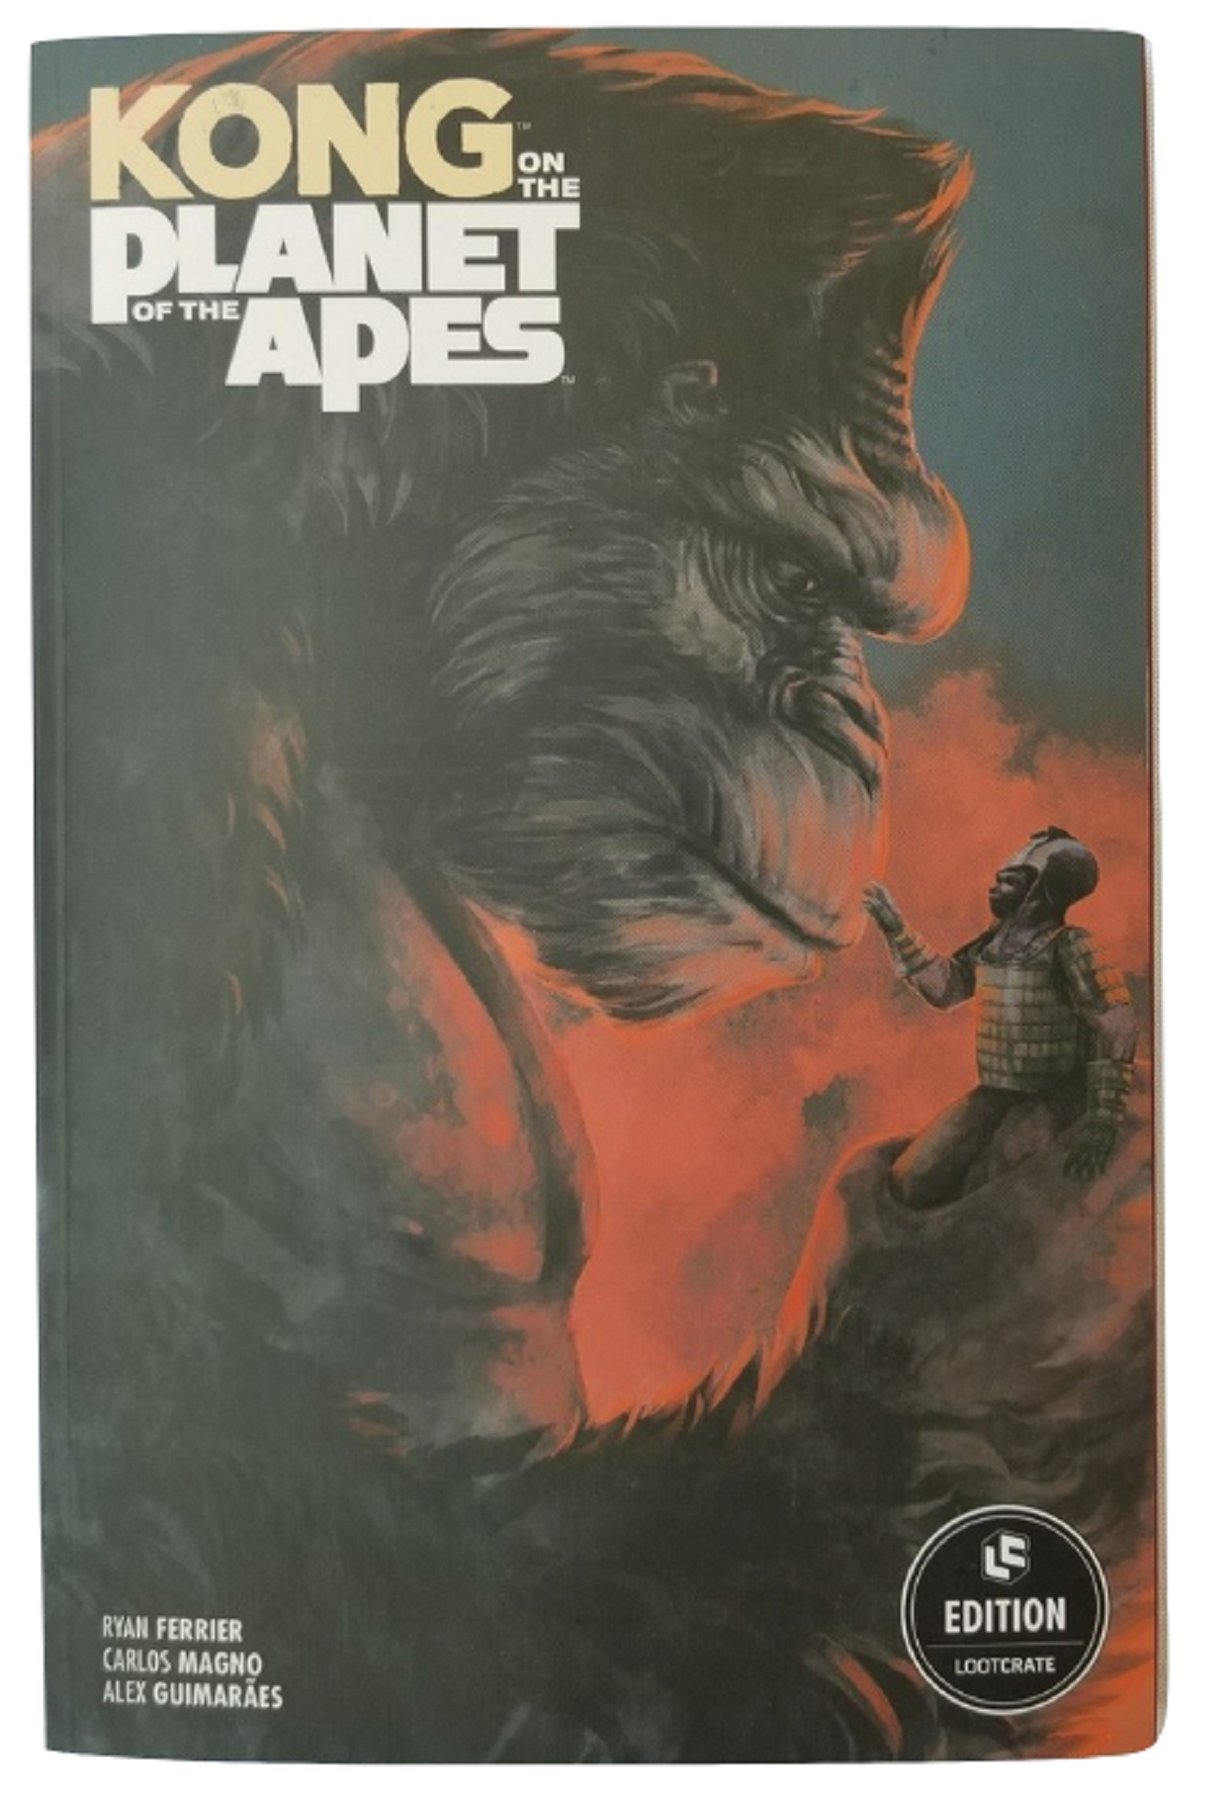 Kong on the Planet of the Apes - Graphic Novel pdf